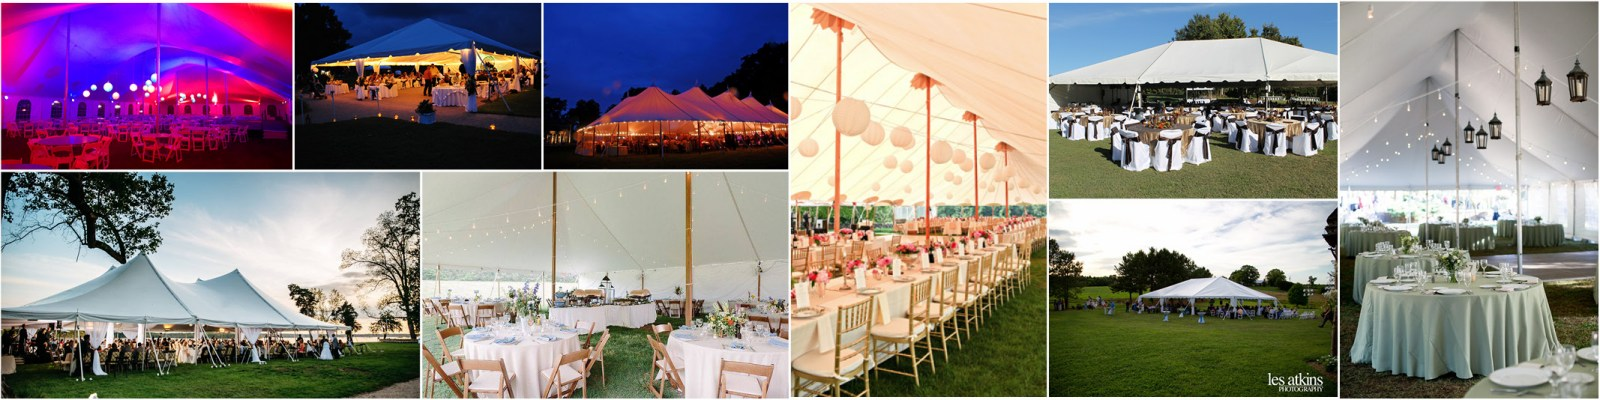 Party rentals in Richmond VA, Colonial Heights, South Hill, Chester, and Petersburg, VA